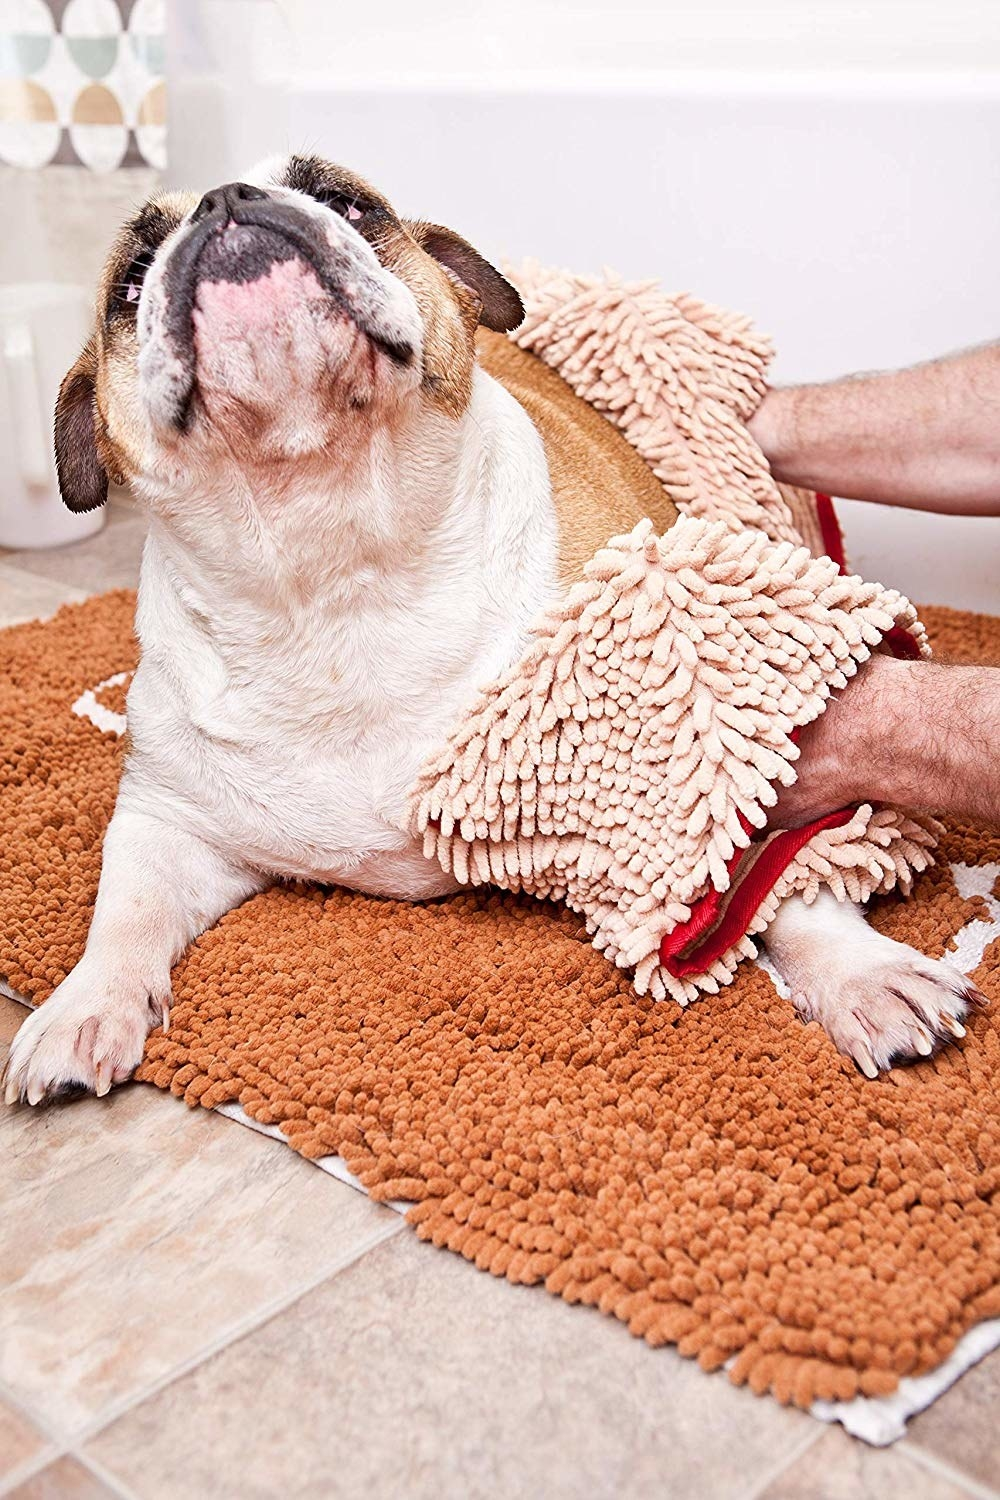 Hands drying a bulldog with the towel